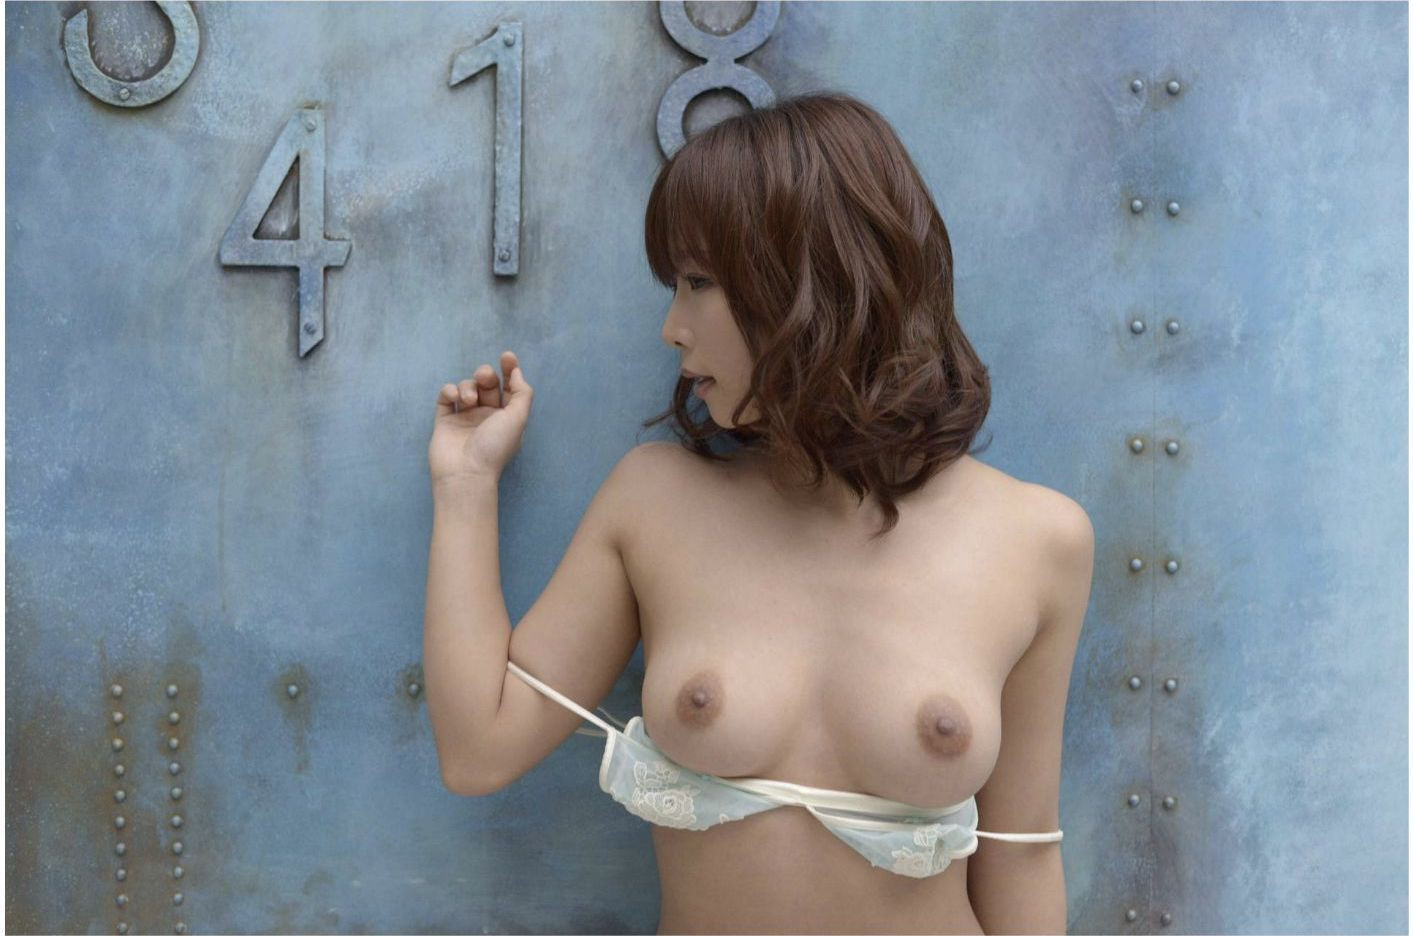 SOFT ON DEMAND GRAVURE COLLECTION 紗倉まな04 photo 065